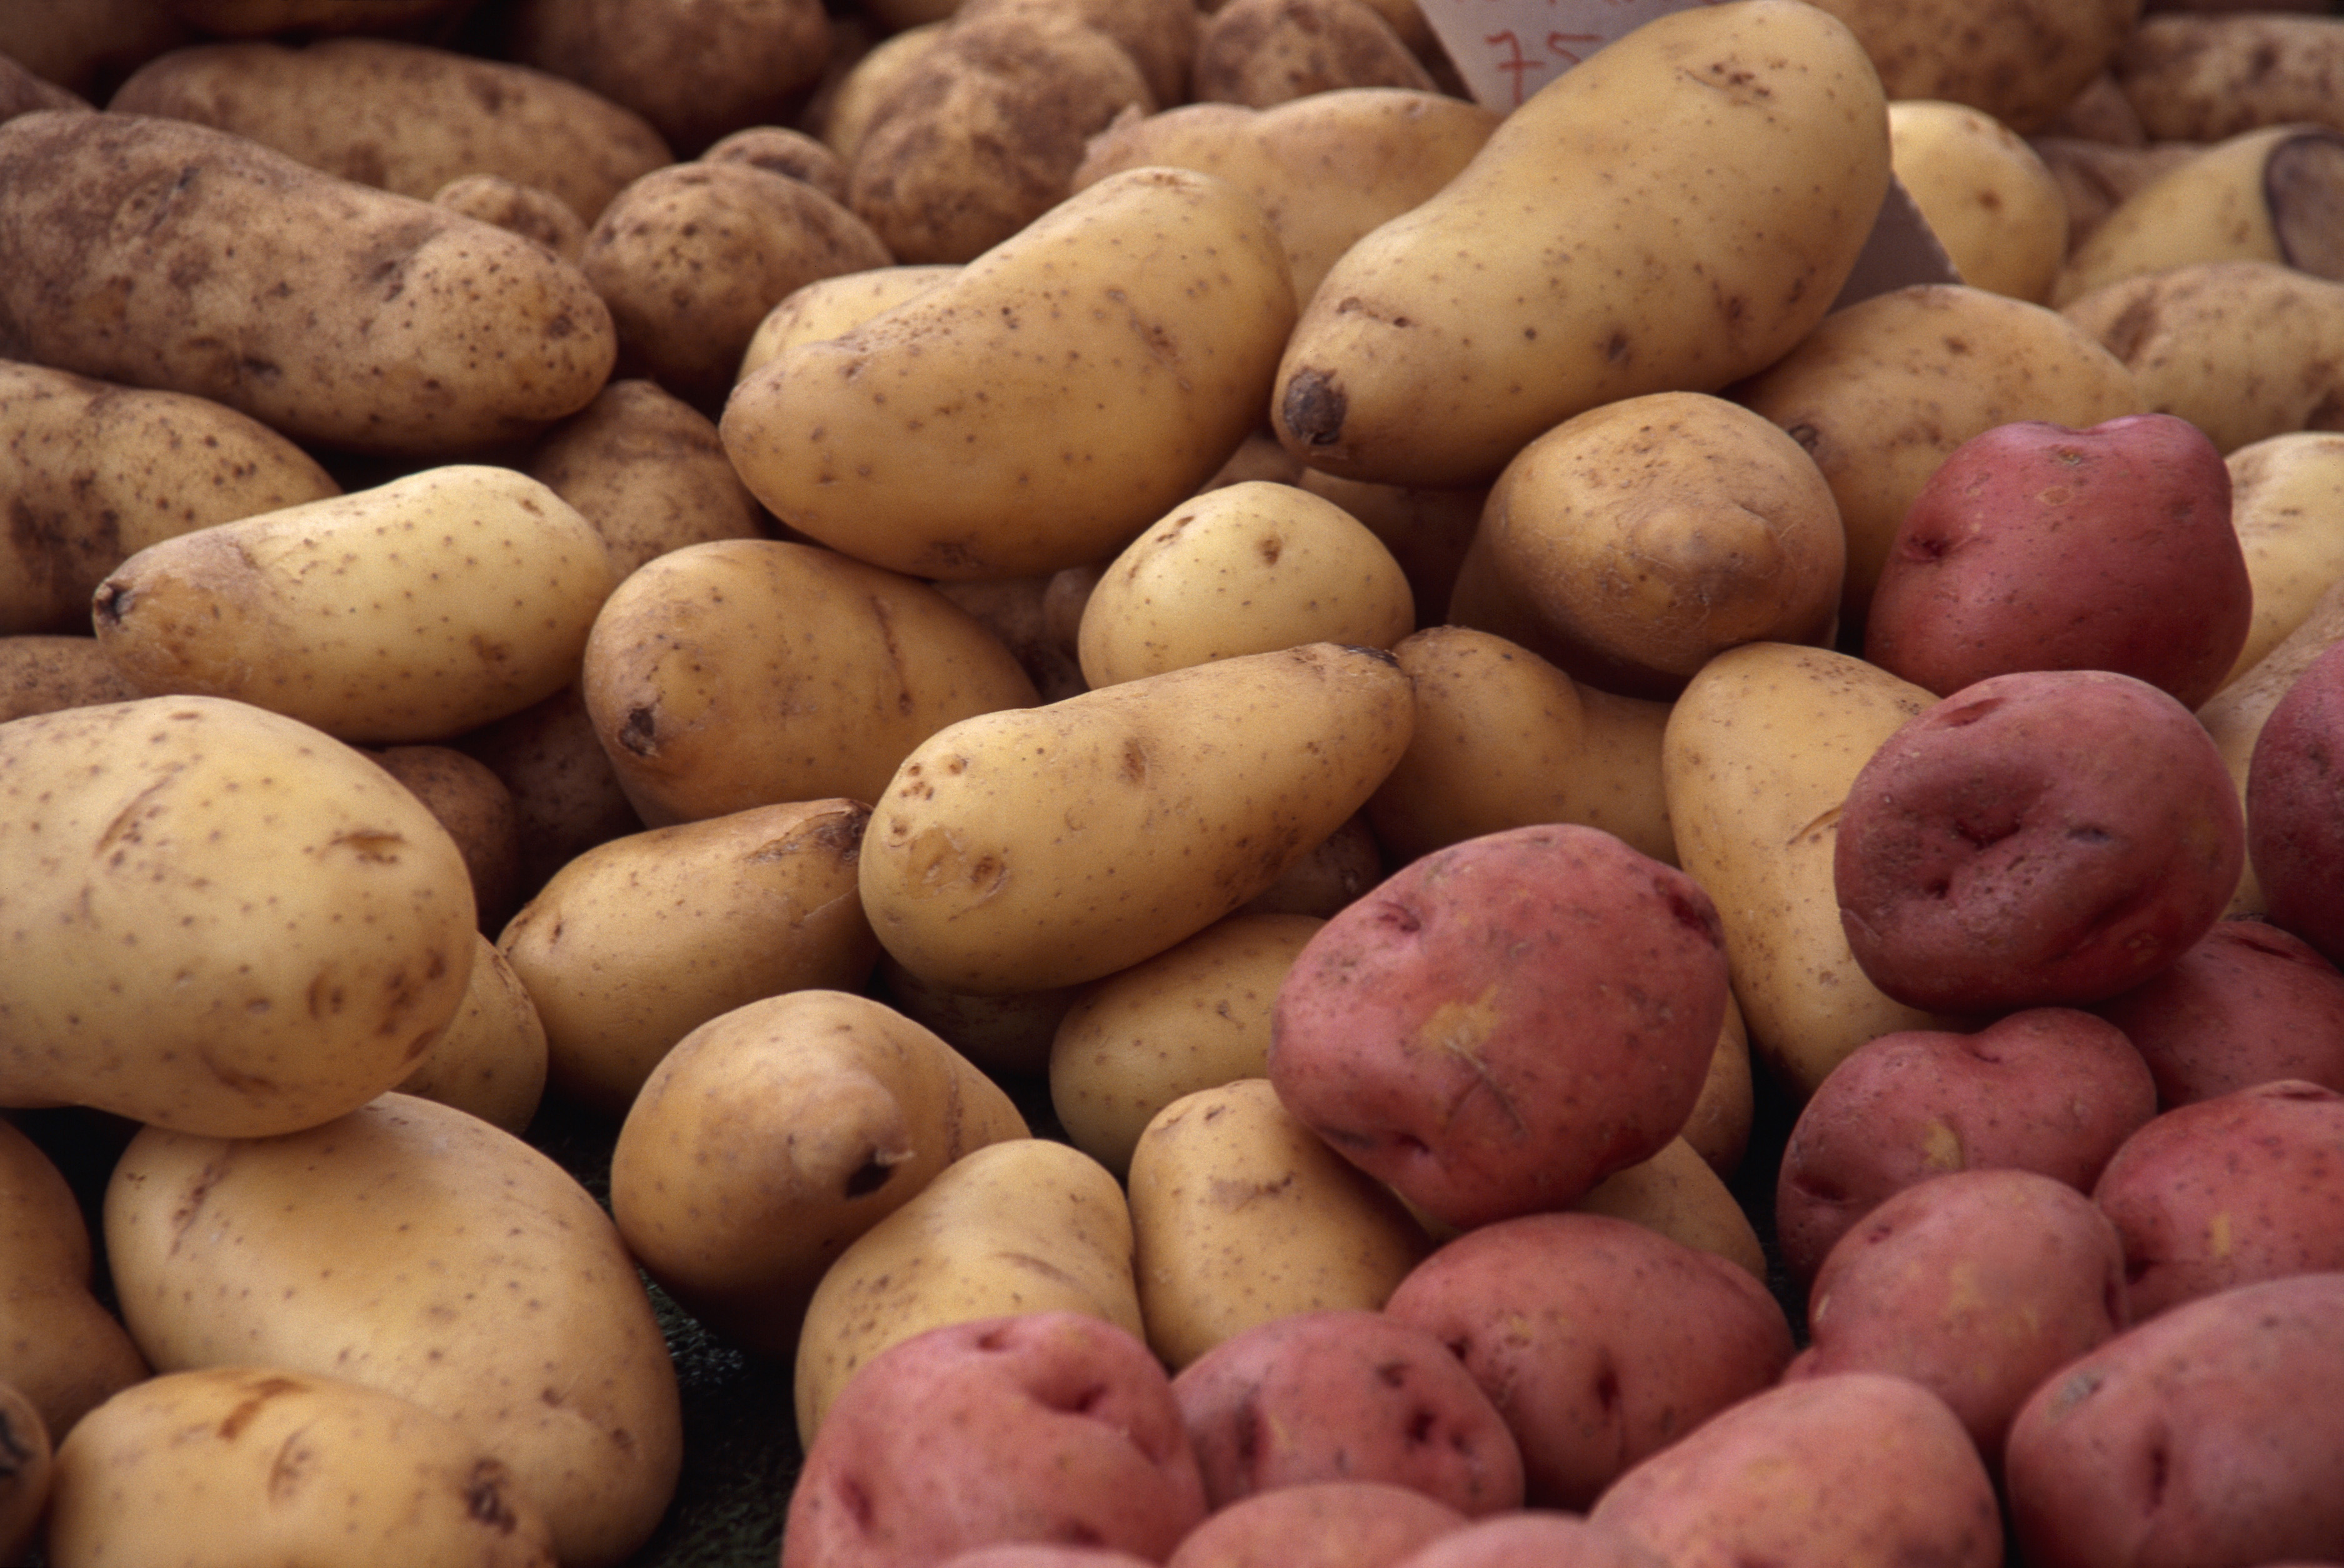 Why Do Potatoes Have a Higher Glycemic Index Than Sugar advise